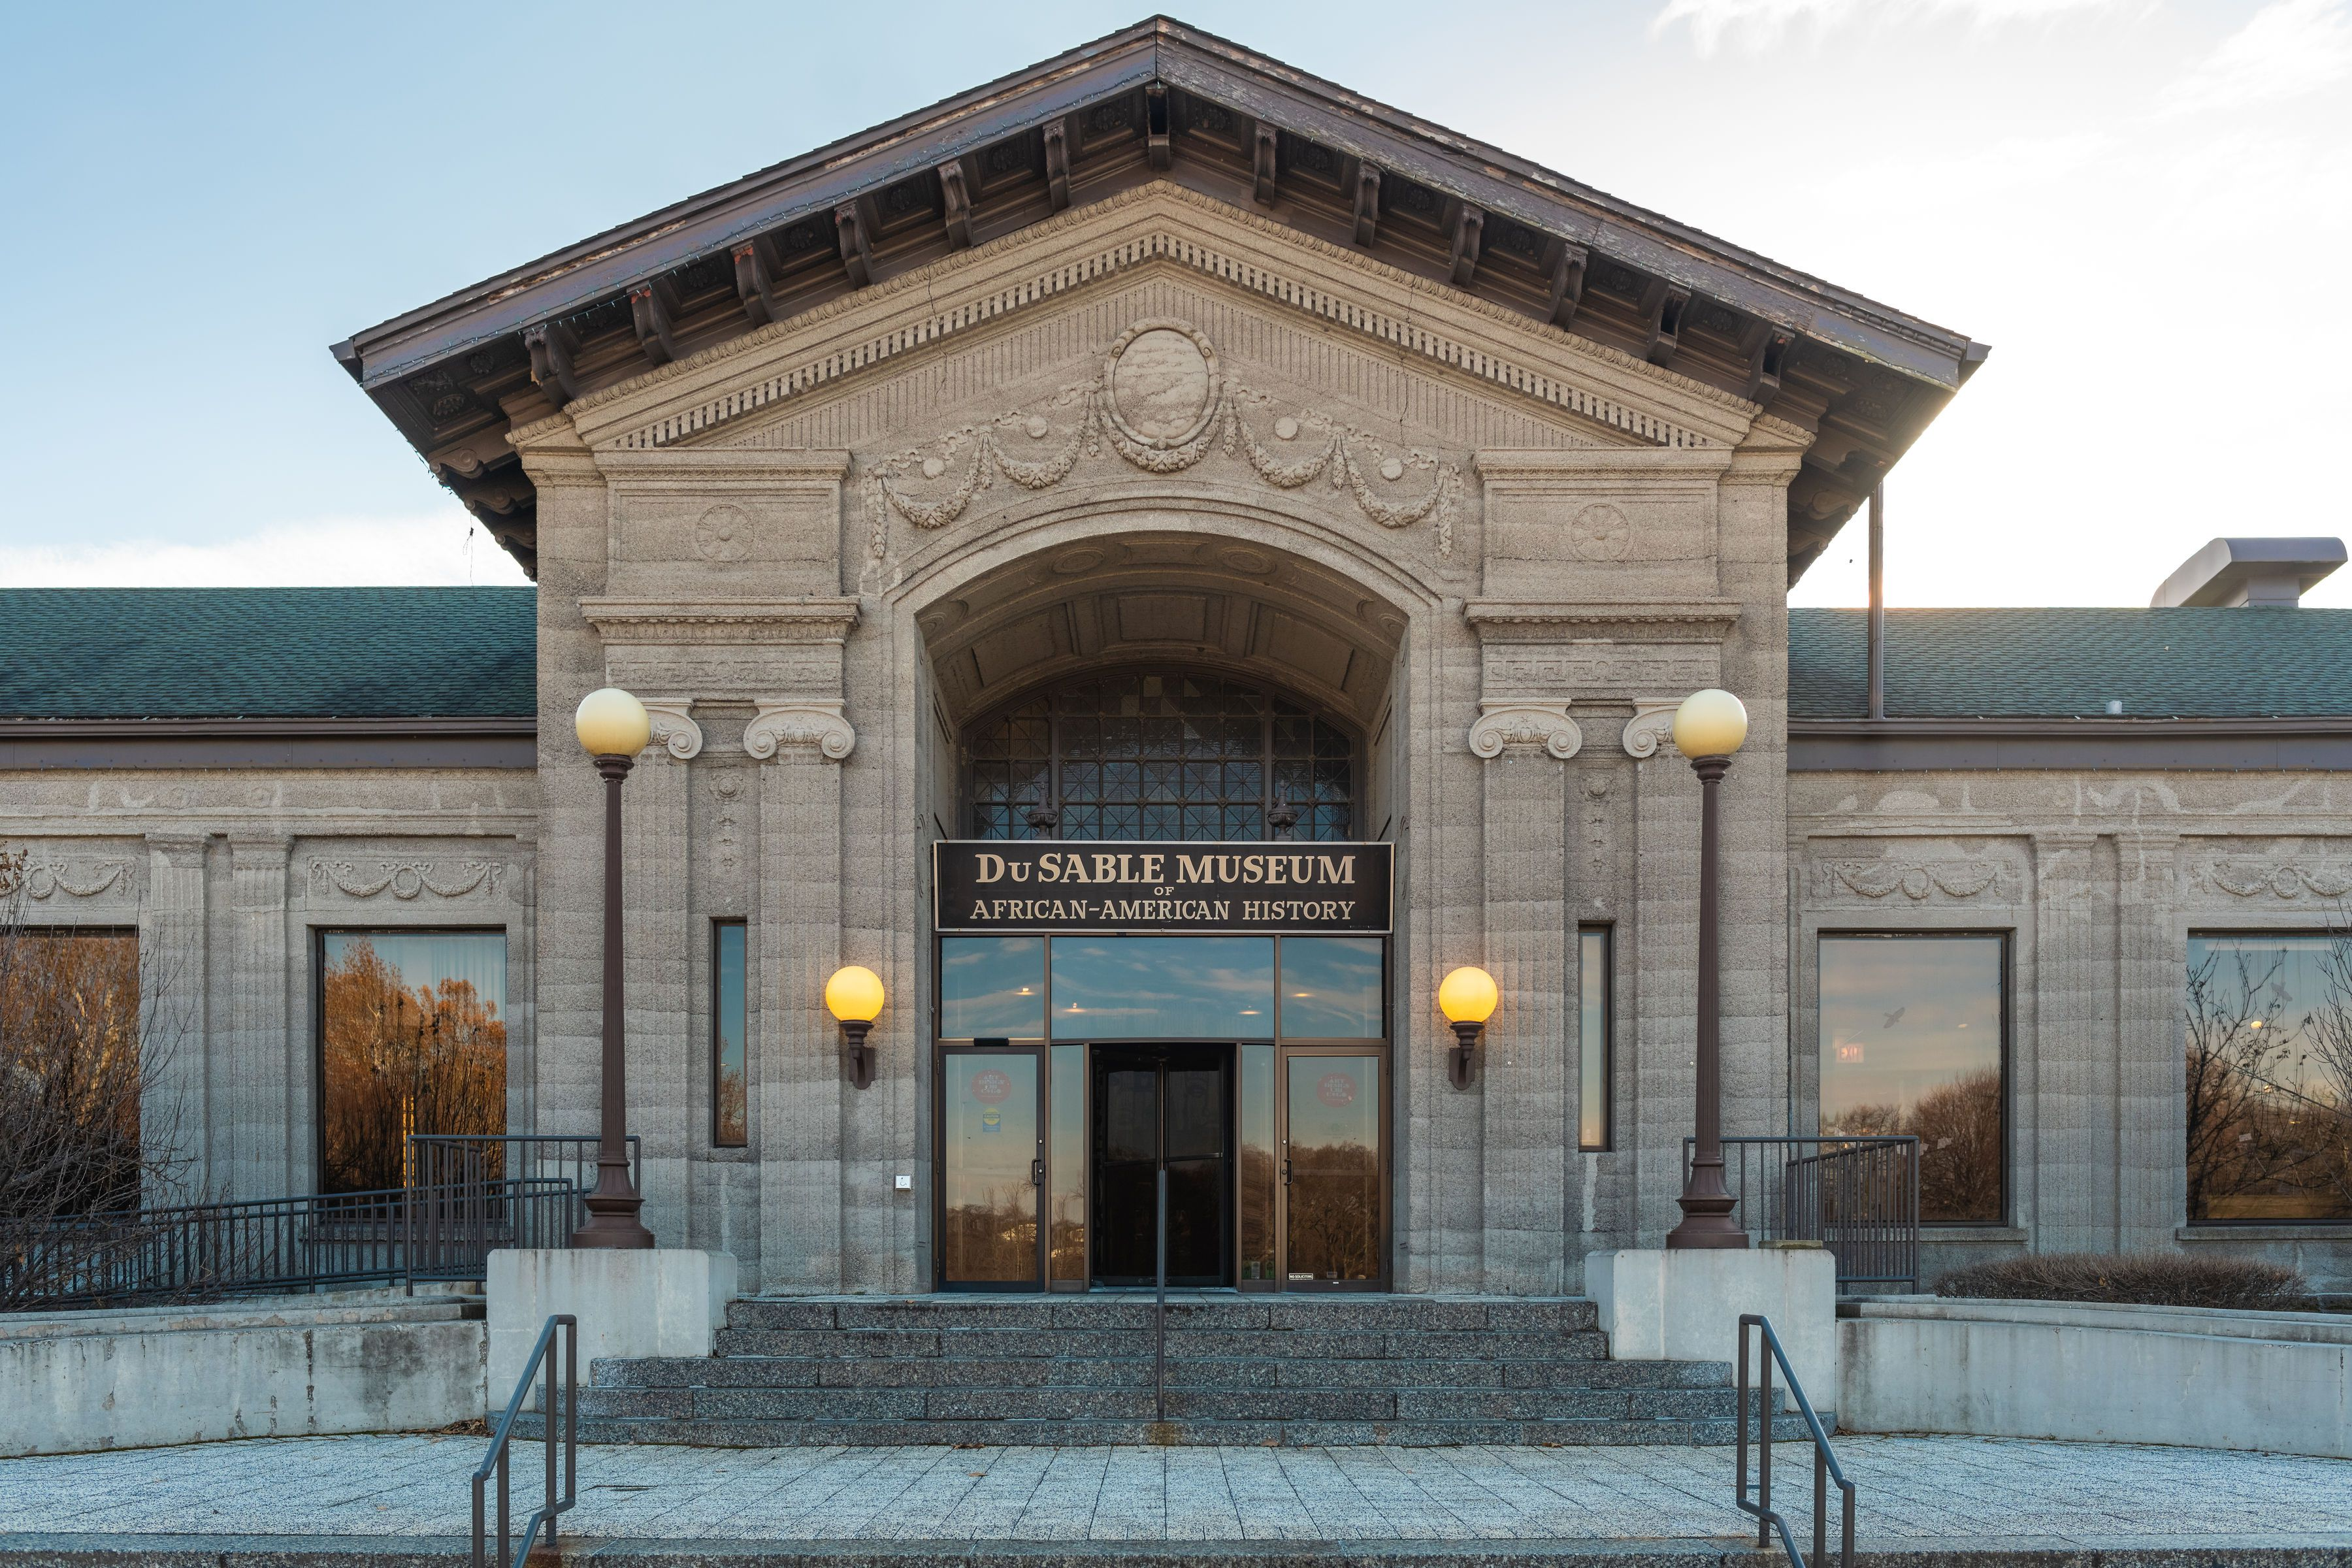 Entryway to the DuSable Museum of African-American History